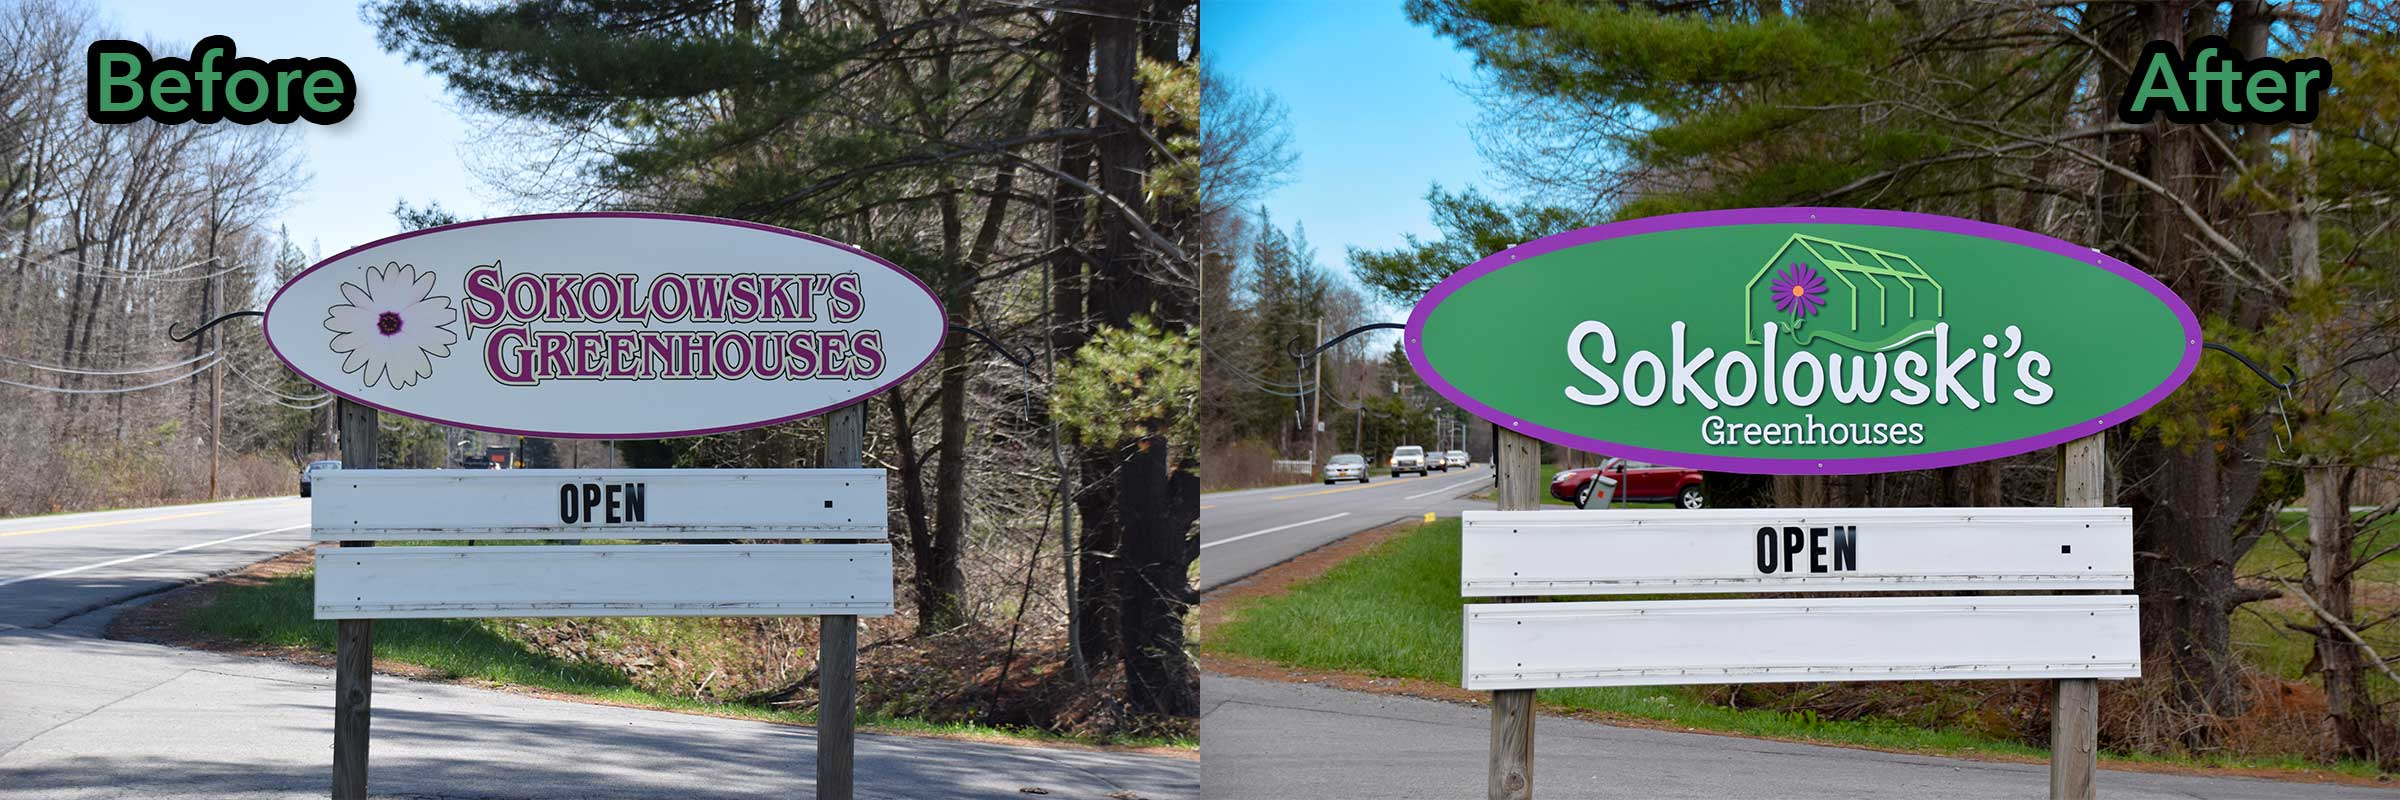 Before and after photo of signage created for Sokolowski's Greenhouses in Clifton Park, New York.